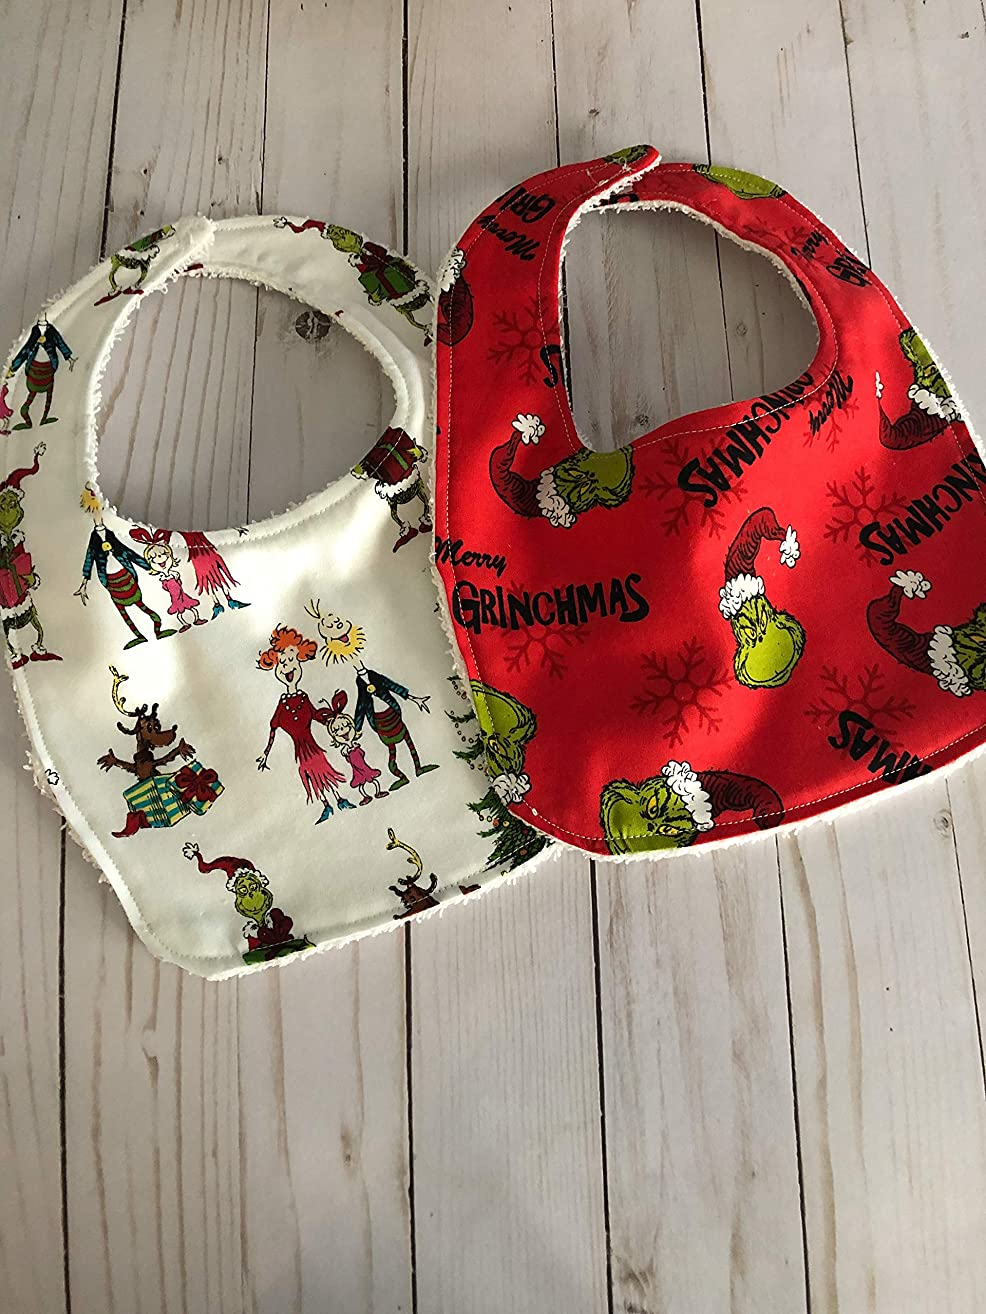 2 Grinch Baby bibs for Christmas for babies 0-12 months